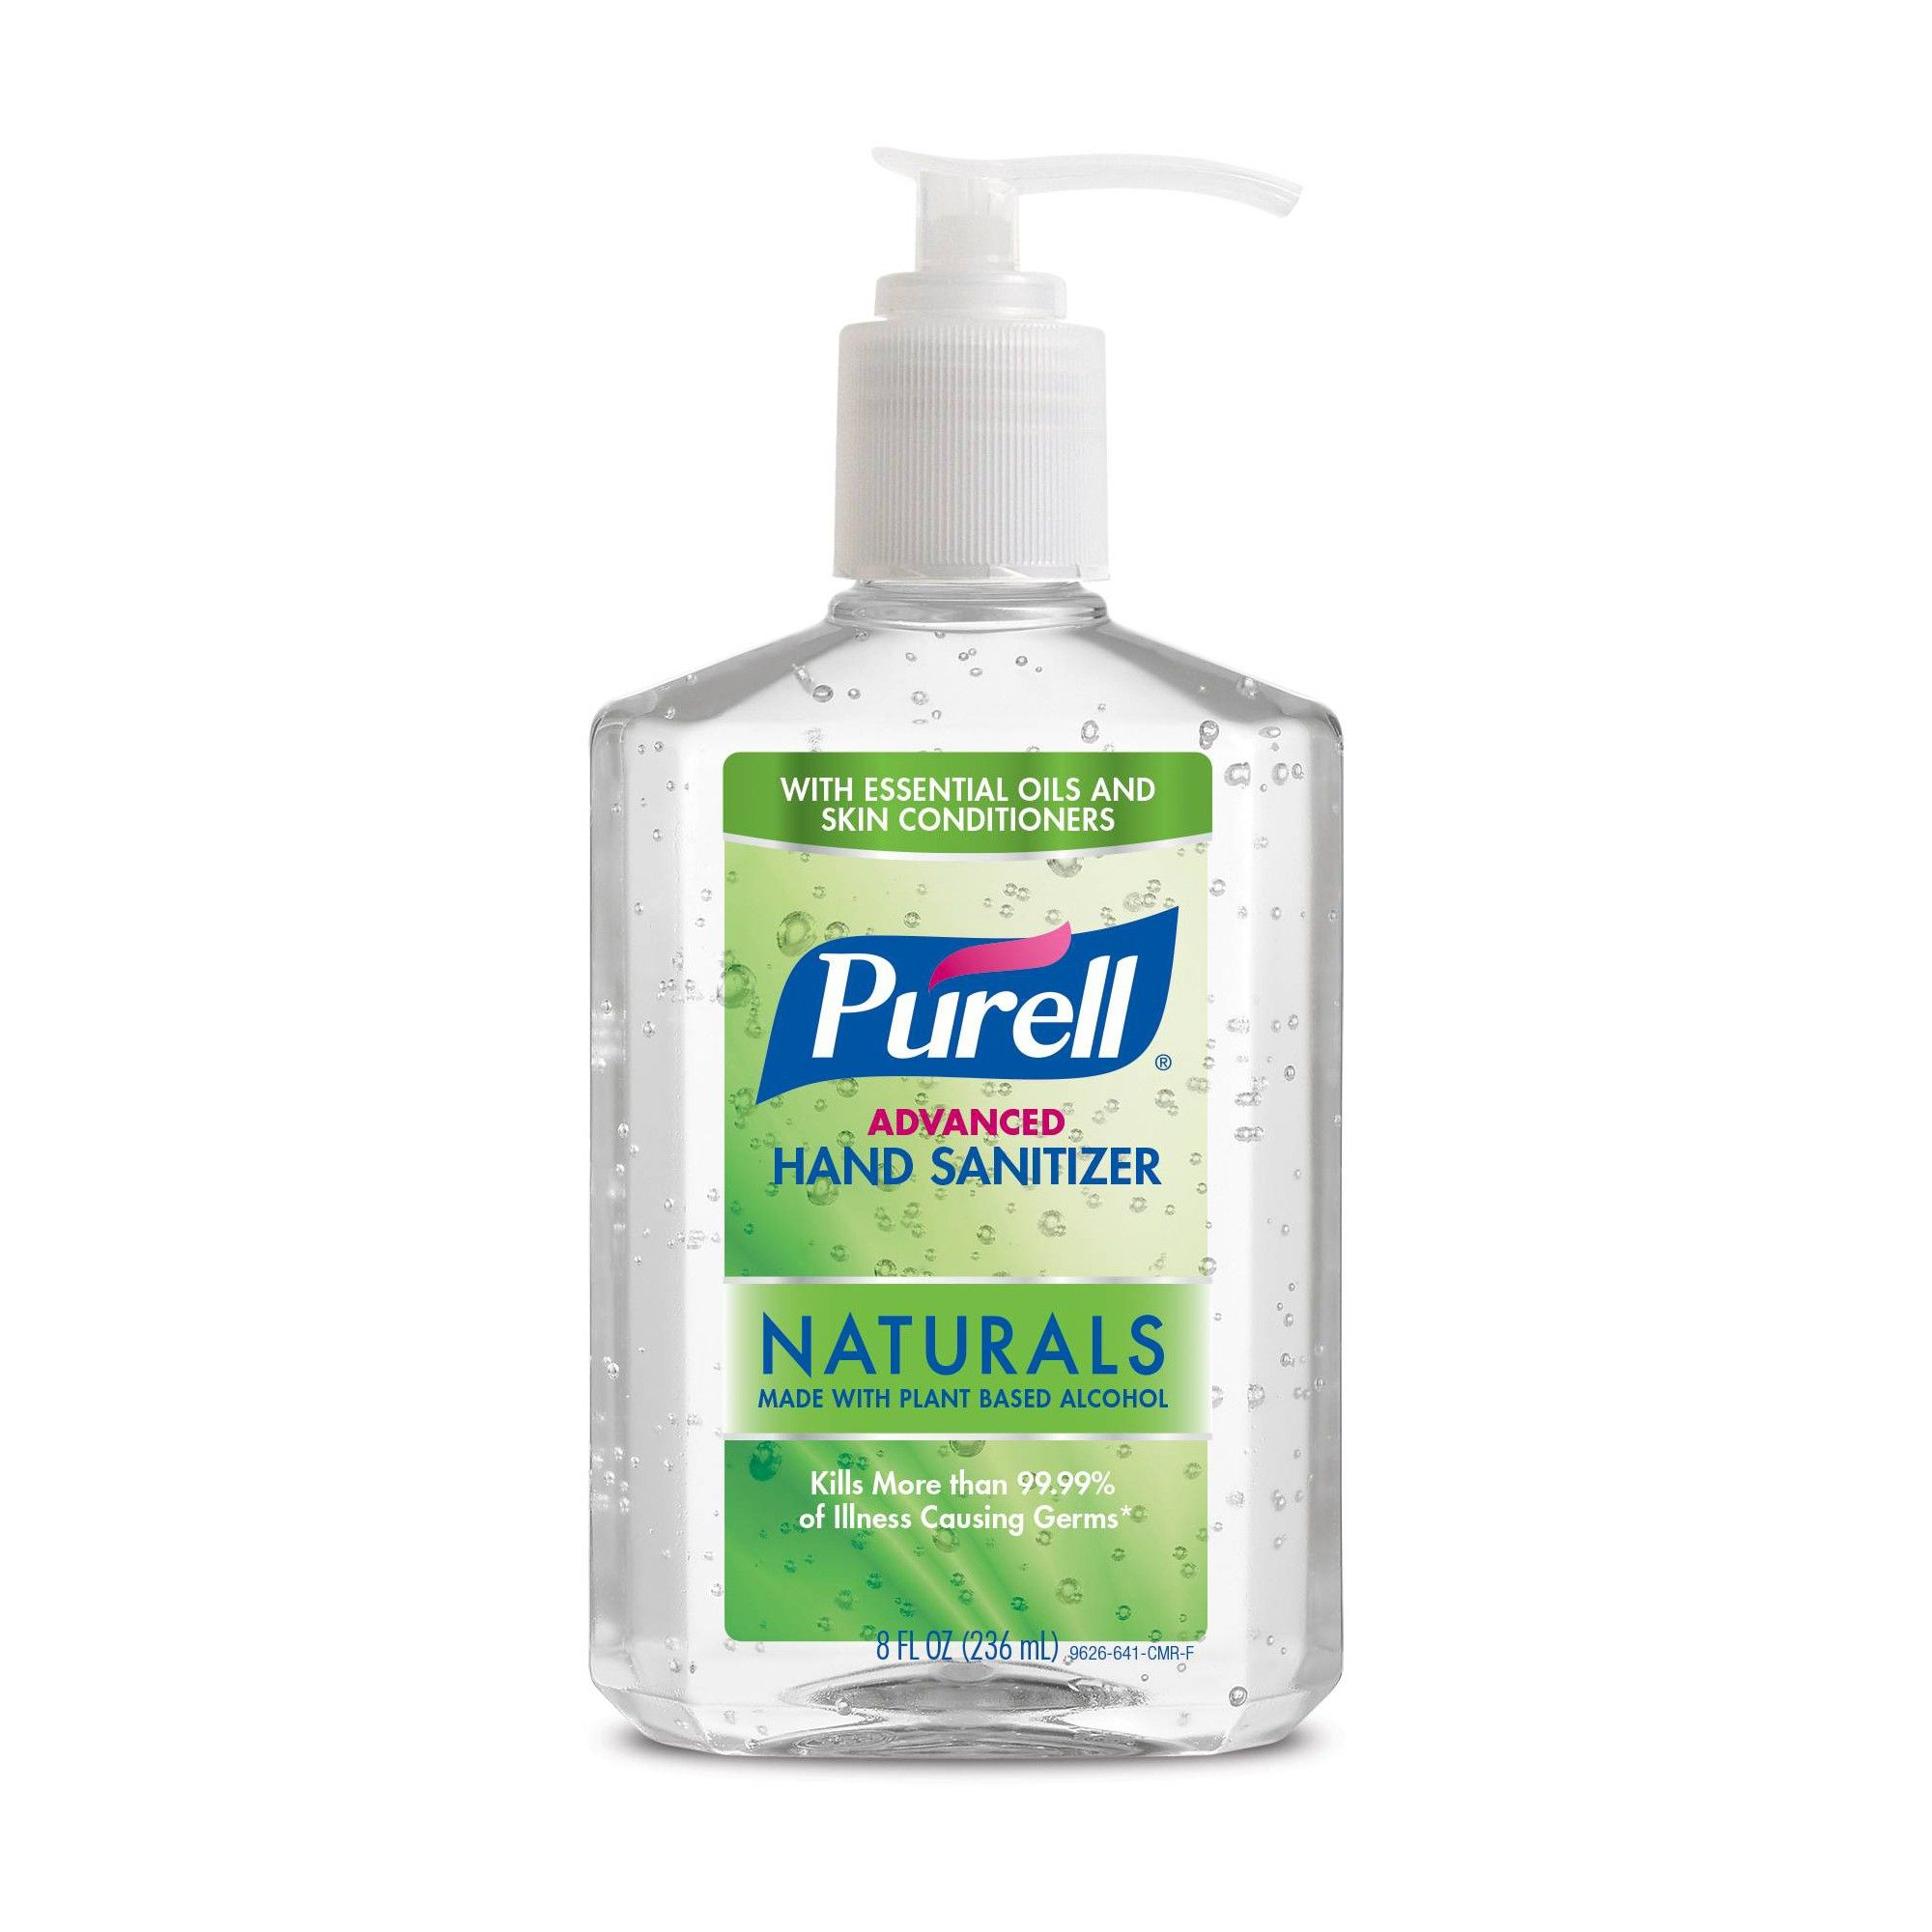 Purell Advanced Hand Sanitizer 8 Fl Oz Natural Hand Sanitizer